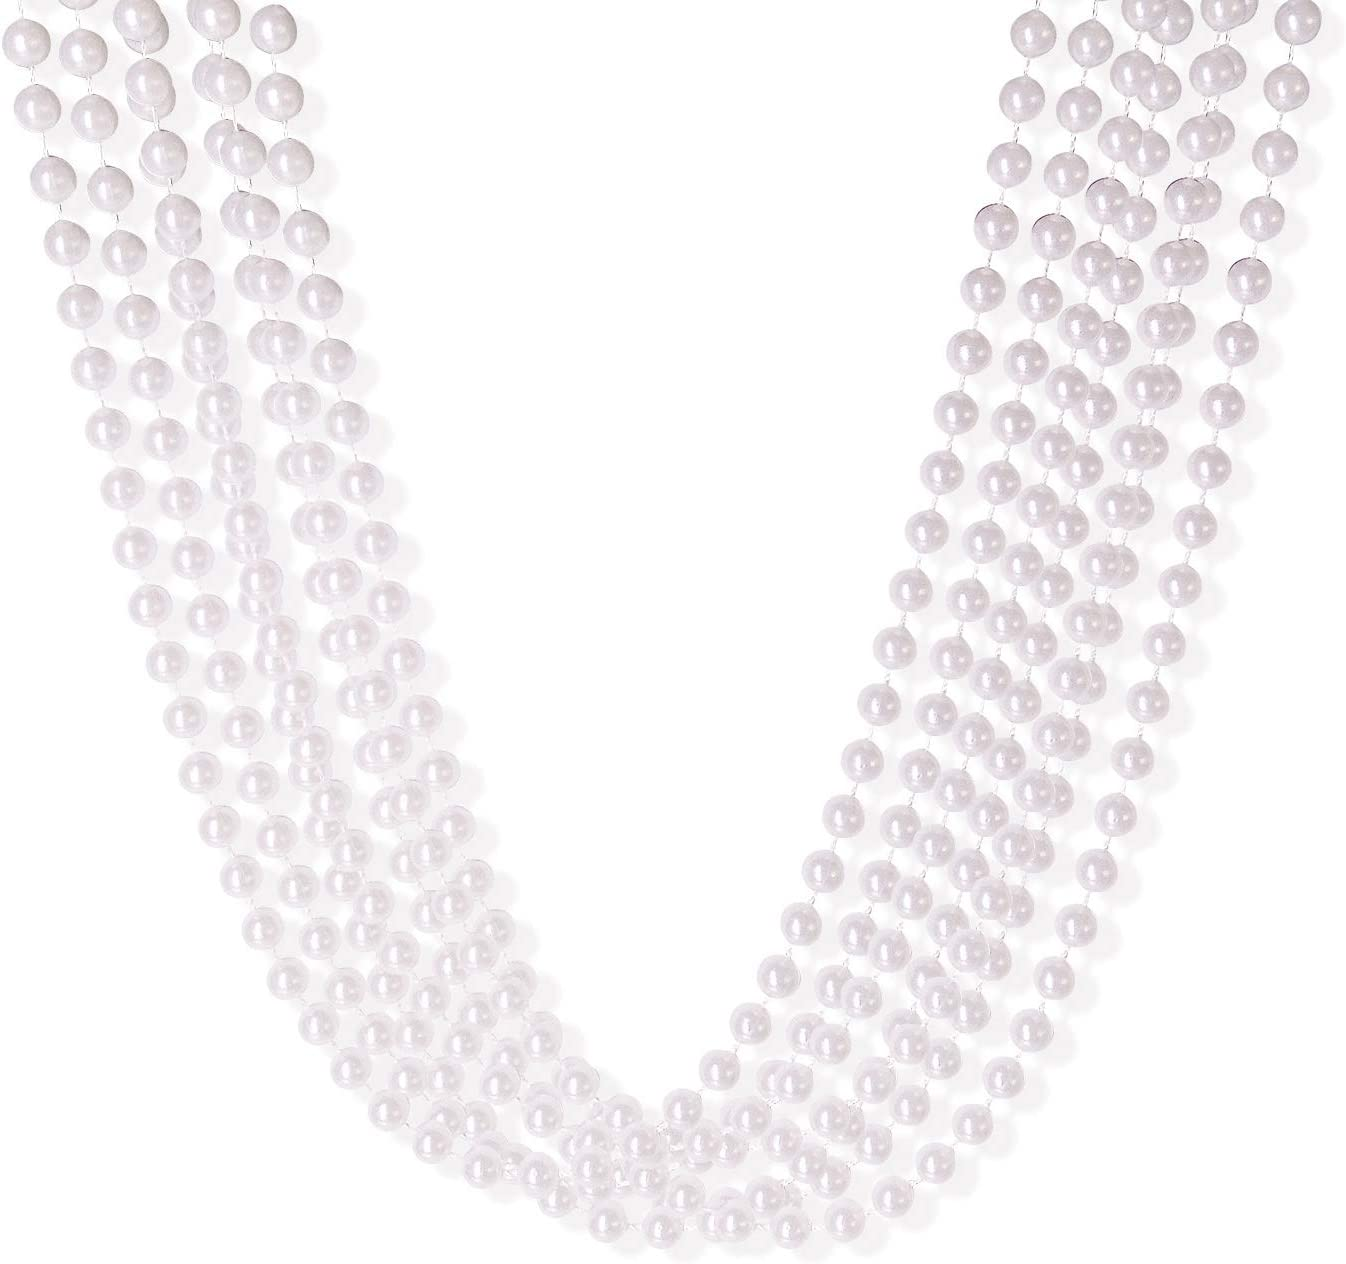 SouilGoal Bead Necklaces 32 Inch 10 Necklace fo Now on sale Round mm Colorado Springs Mall Costume